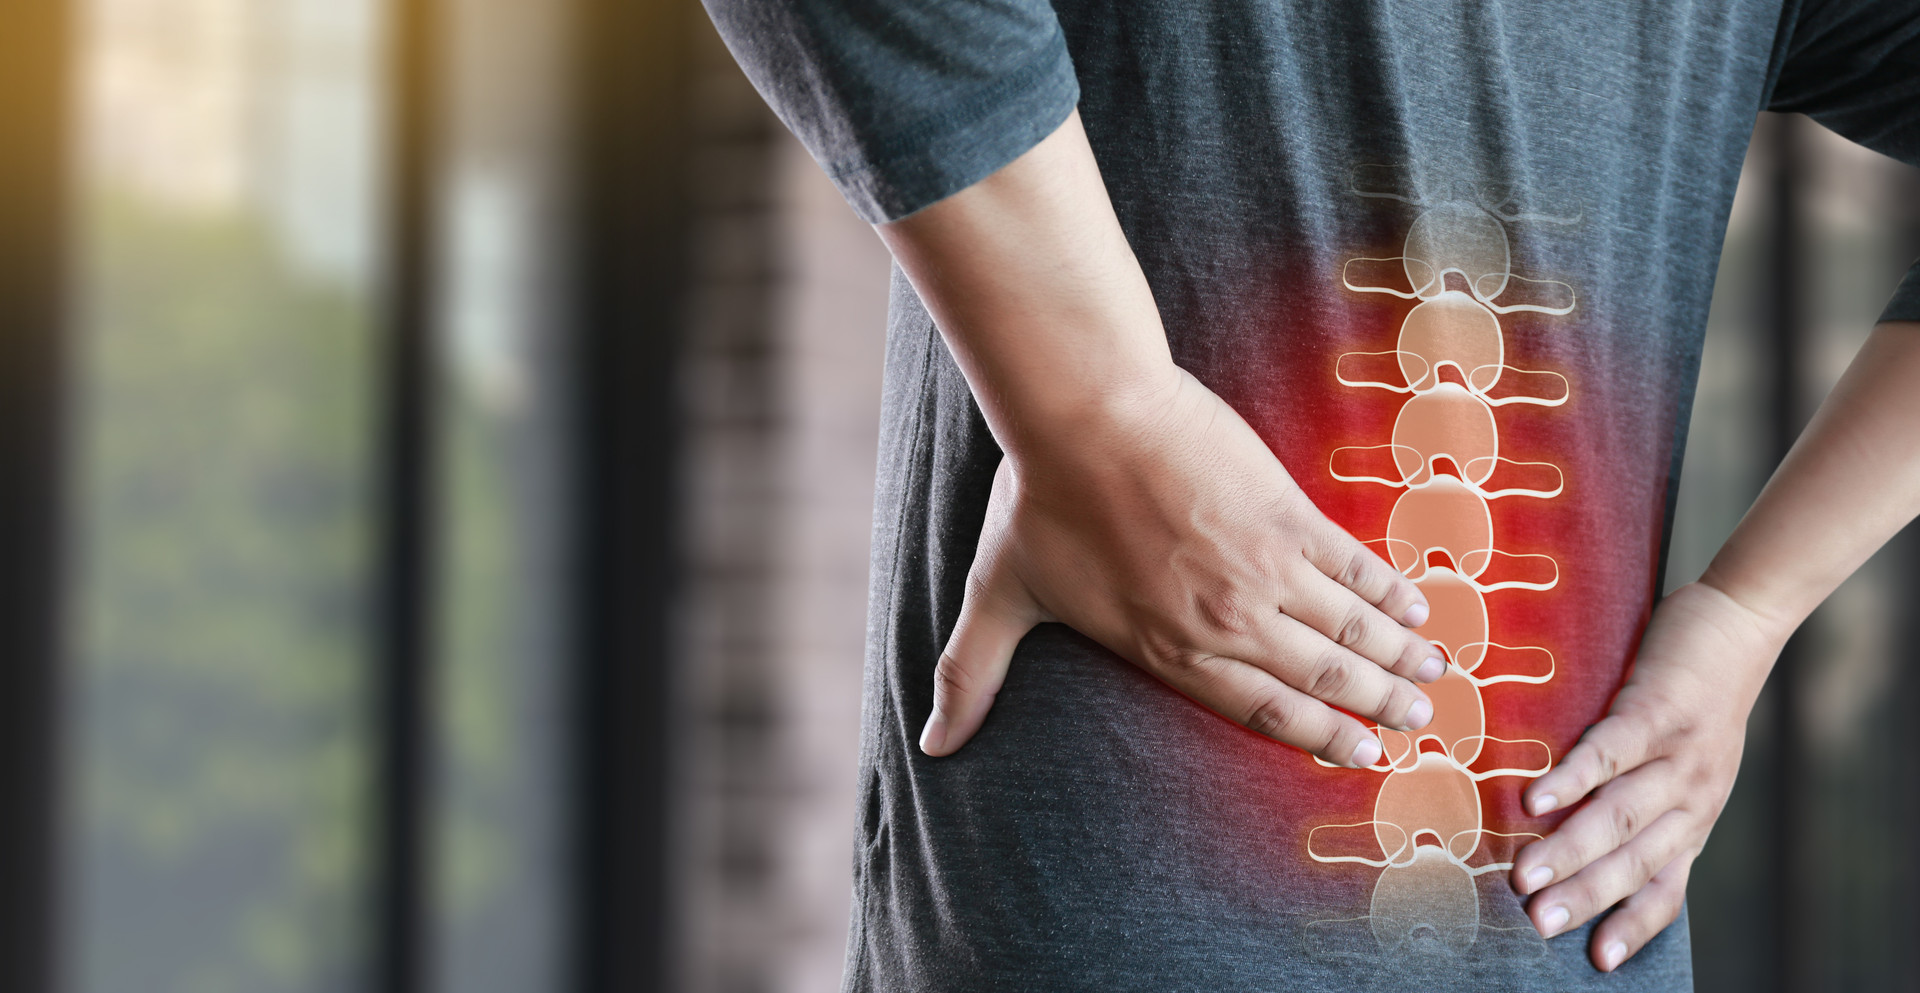 young man Feeling suffering  Lower back